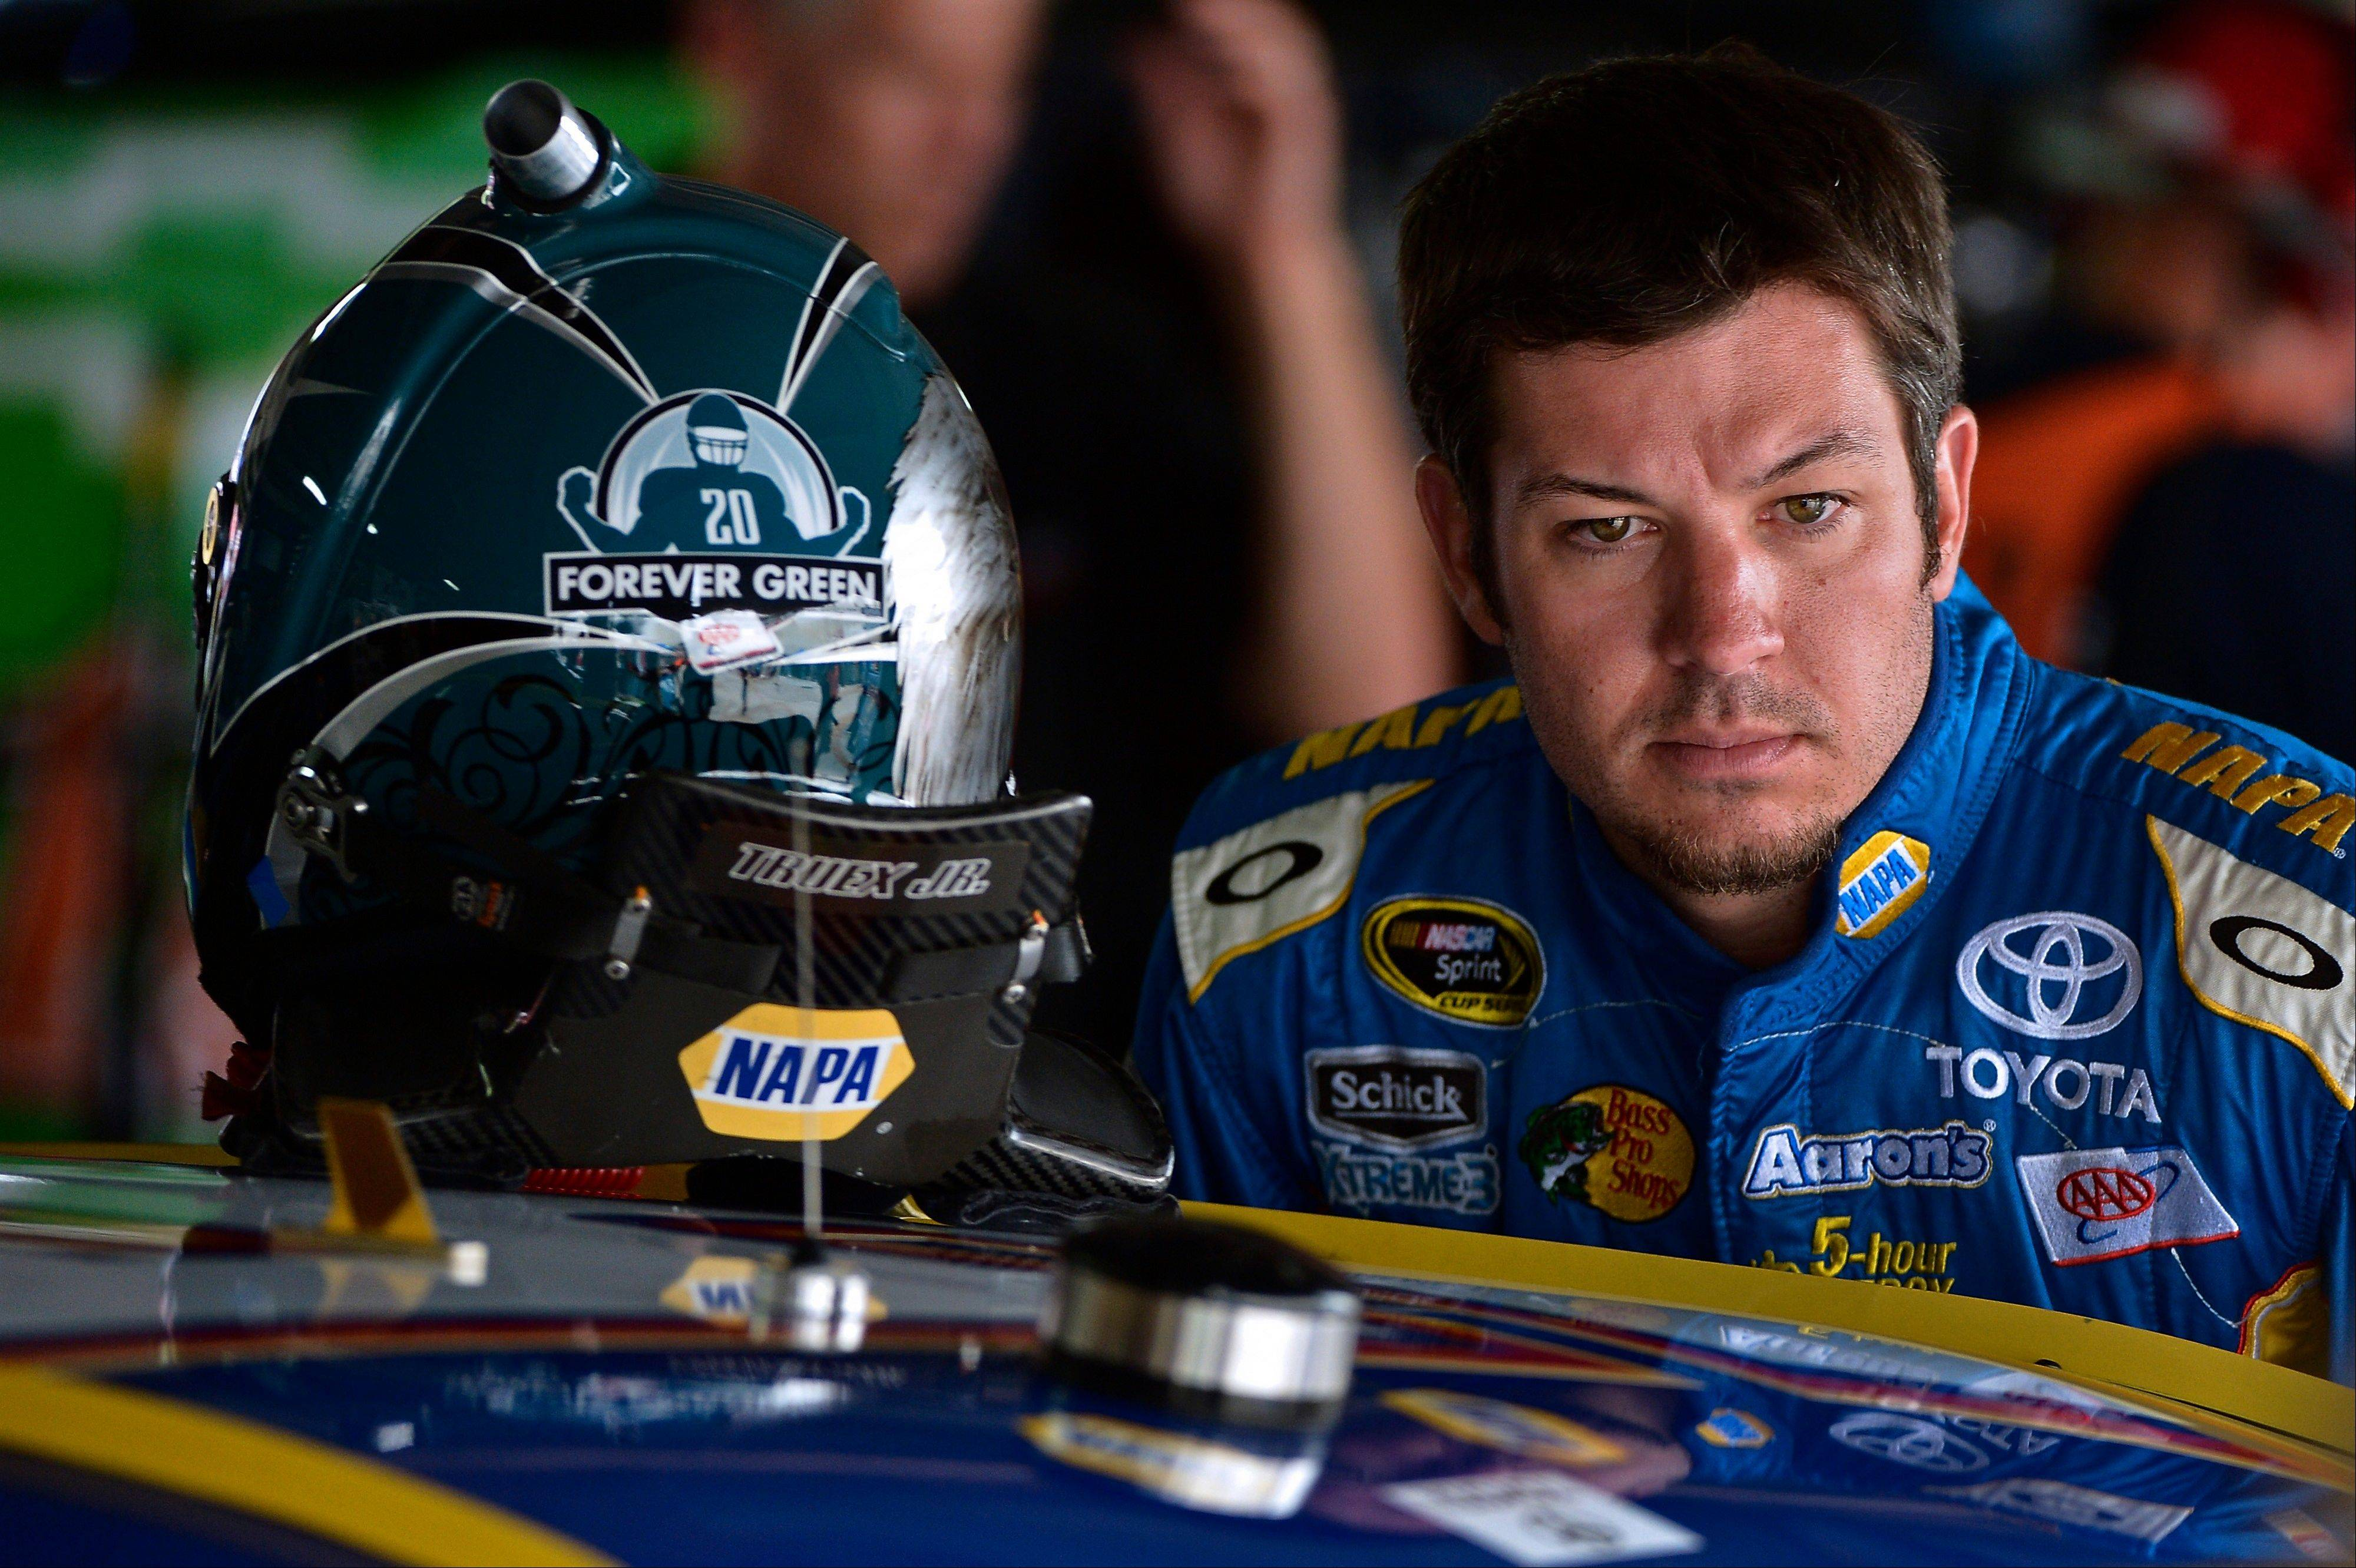 Truex looks to rediscover winning ways at Dover